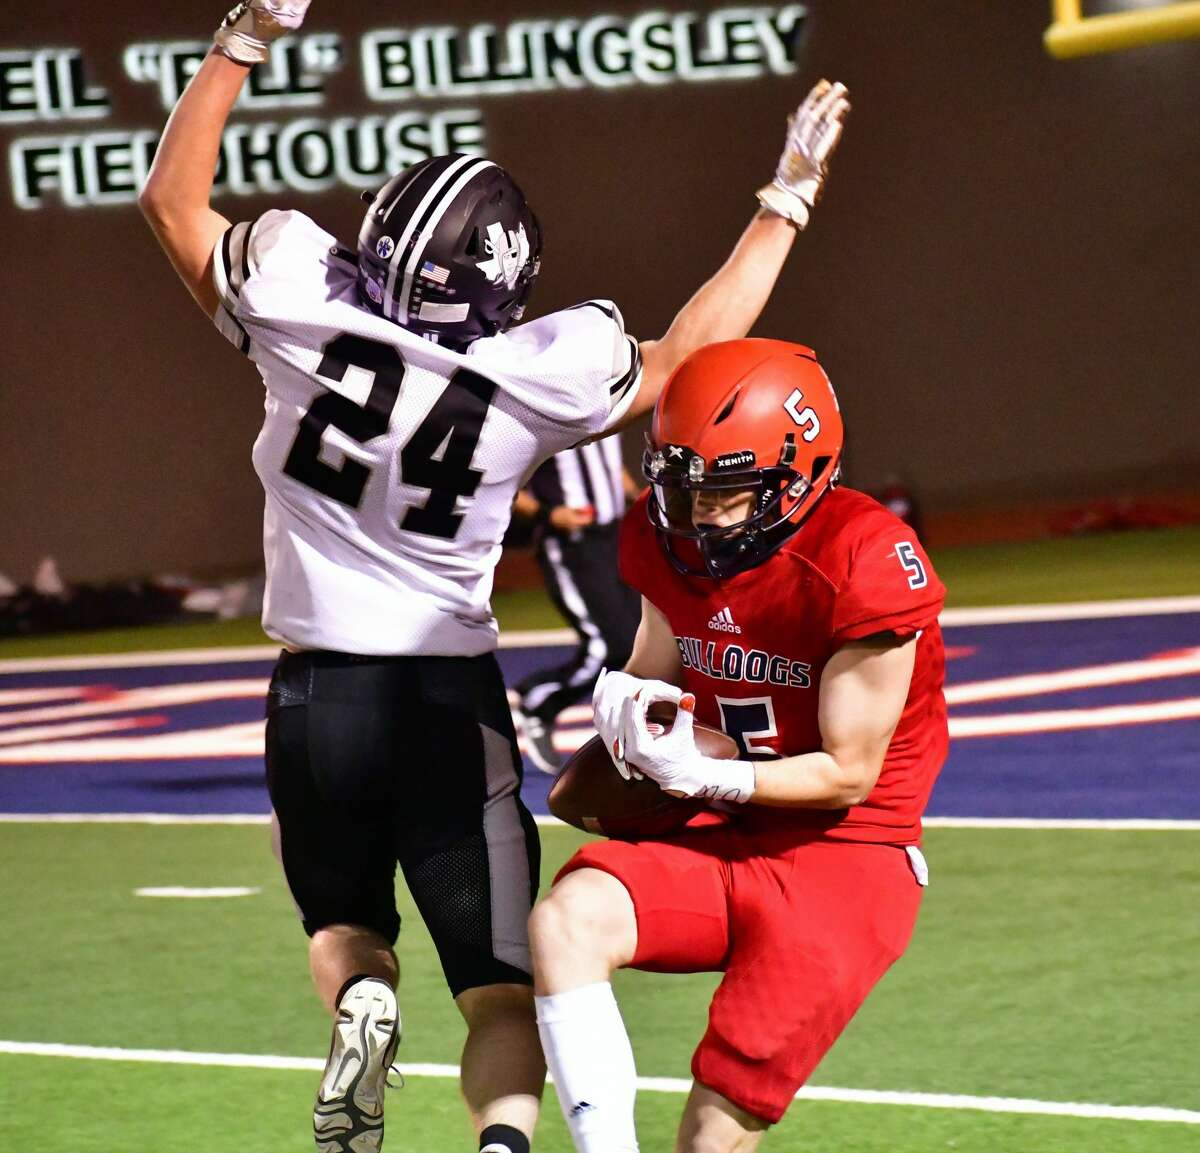 Plainview suffered a 48-6 loss to Canyon Randall in a District 3-5A Division II football game on Friday, Nov. 6, 2020 in Greg Sherwood Memorial Bulldog Stadium.